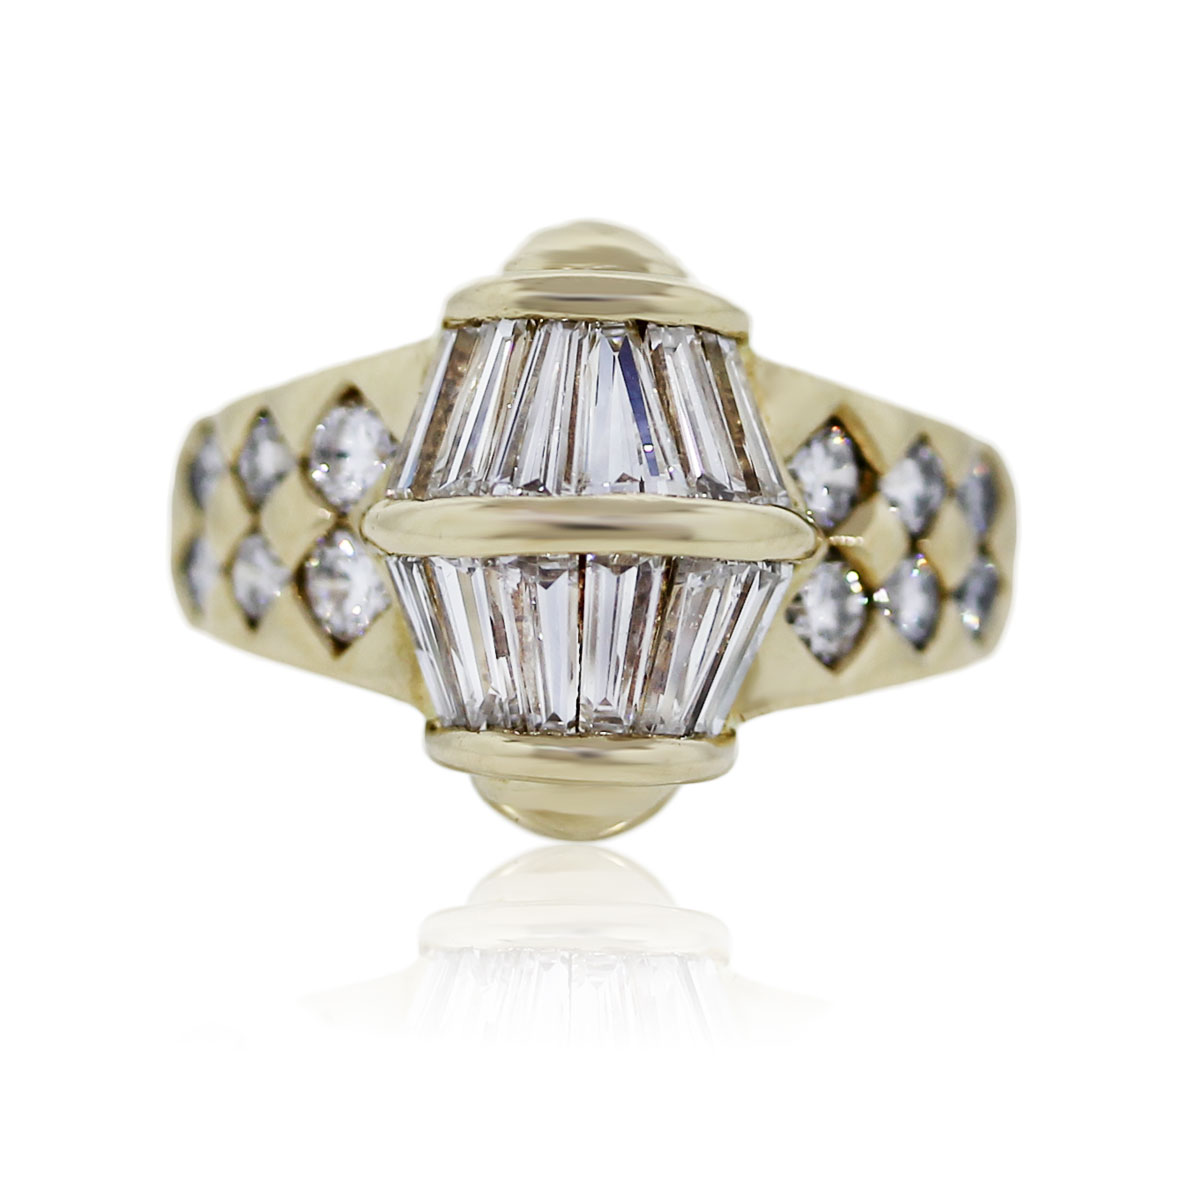 You are viewing this 18K Yellow Gold Baguette and Round Diamond Ring!